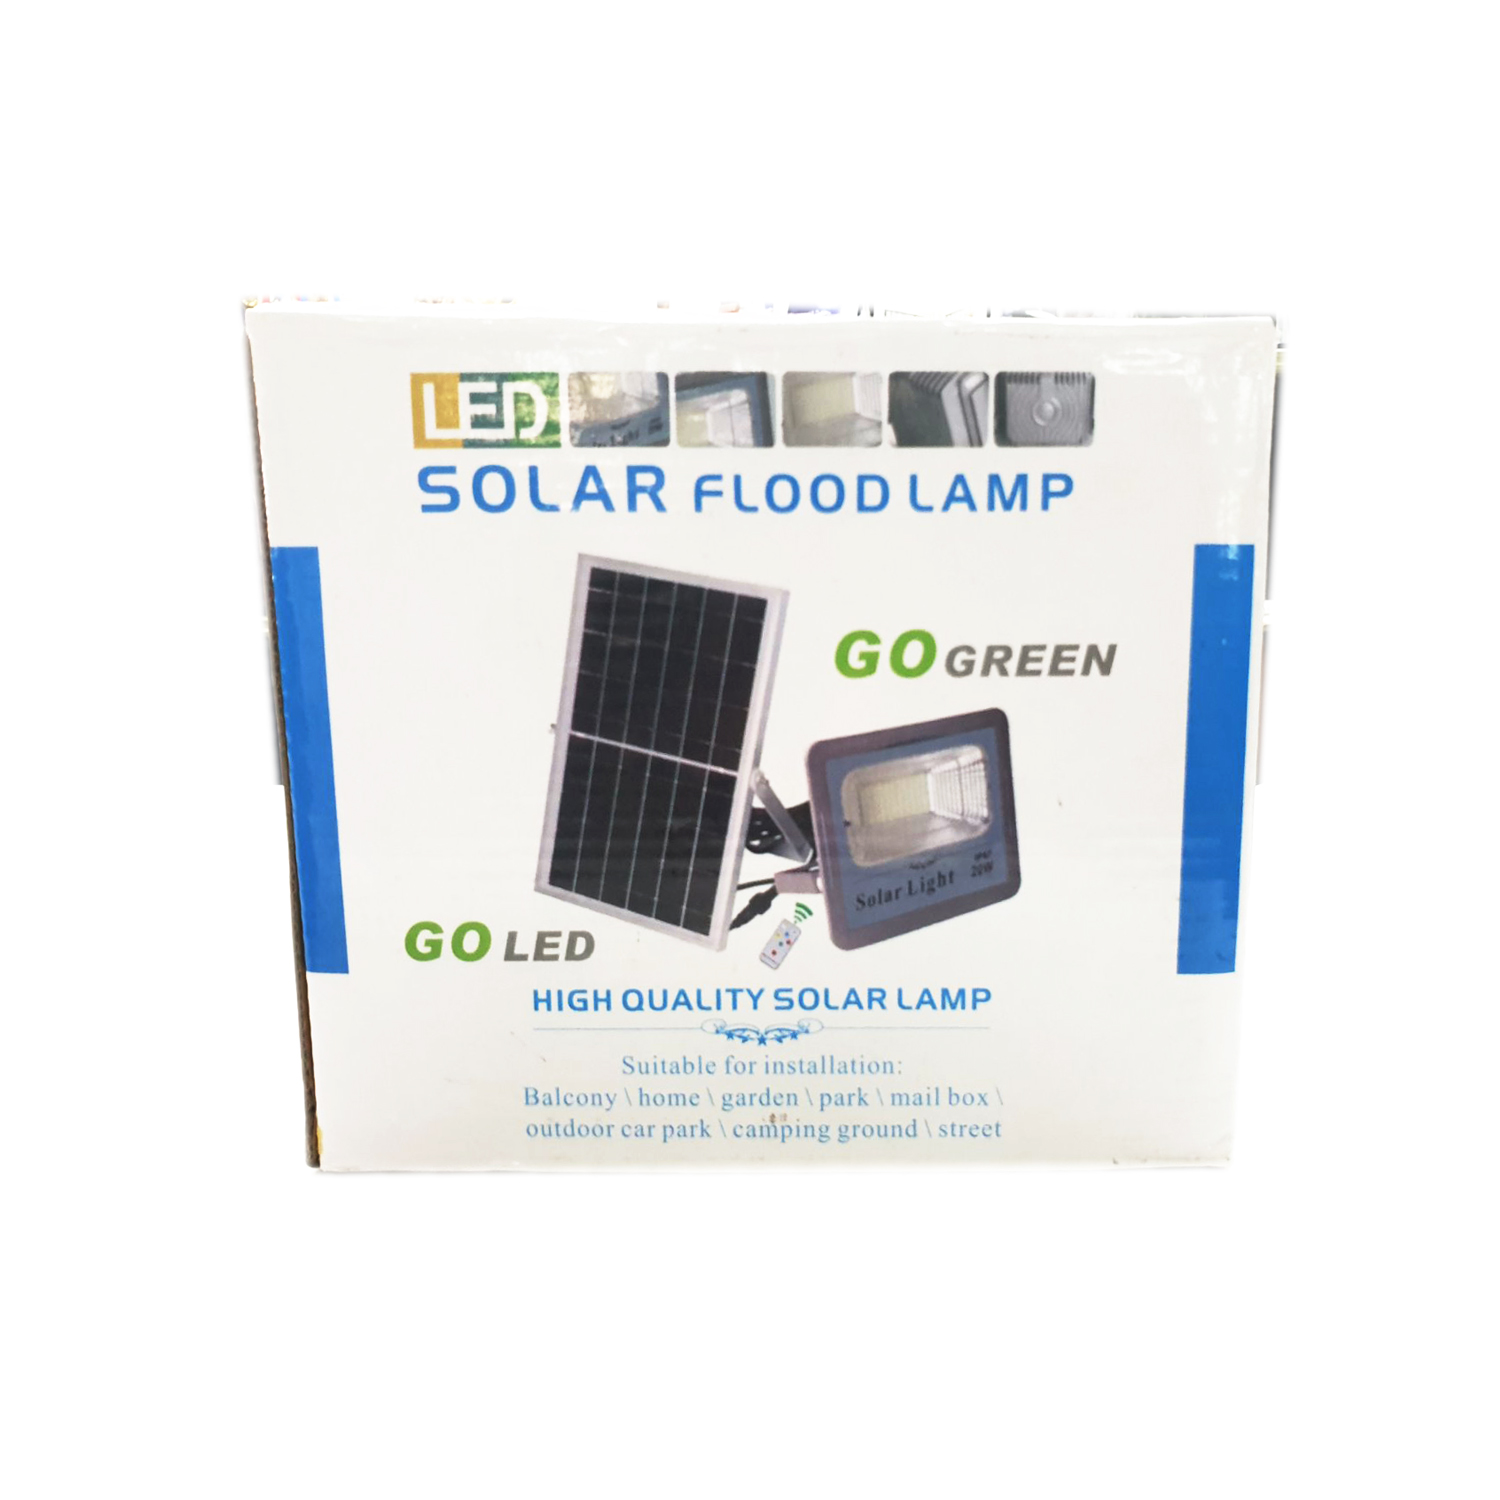 Solar Flood Lamp #31809.1450.21